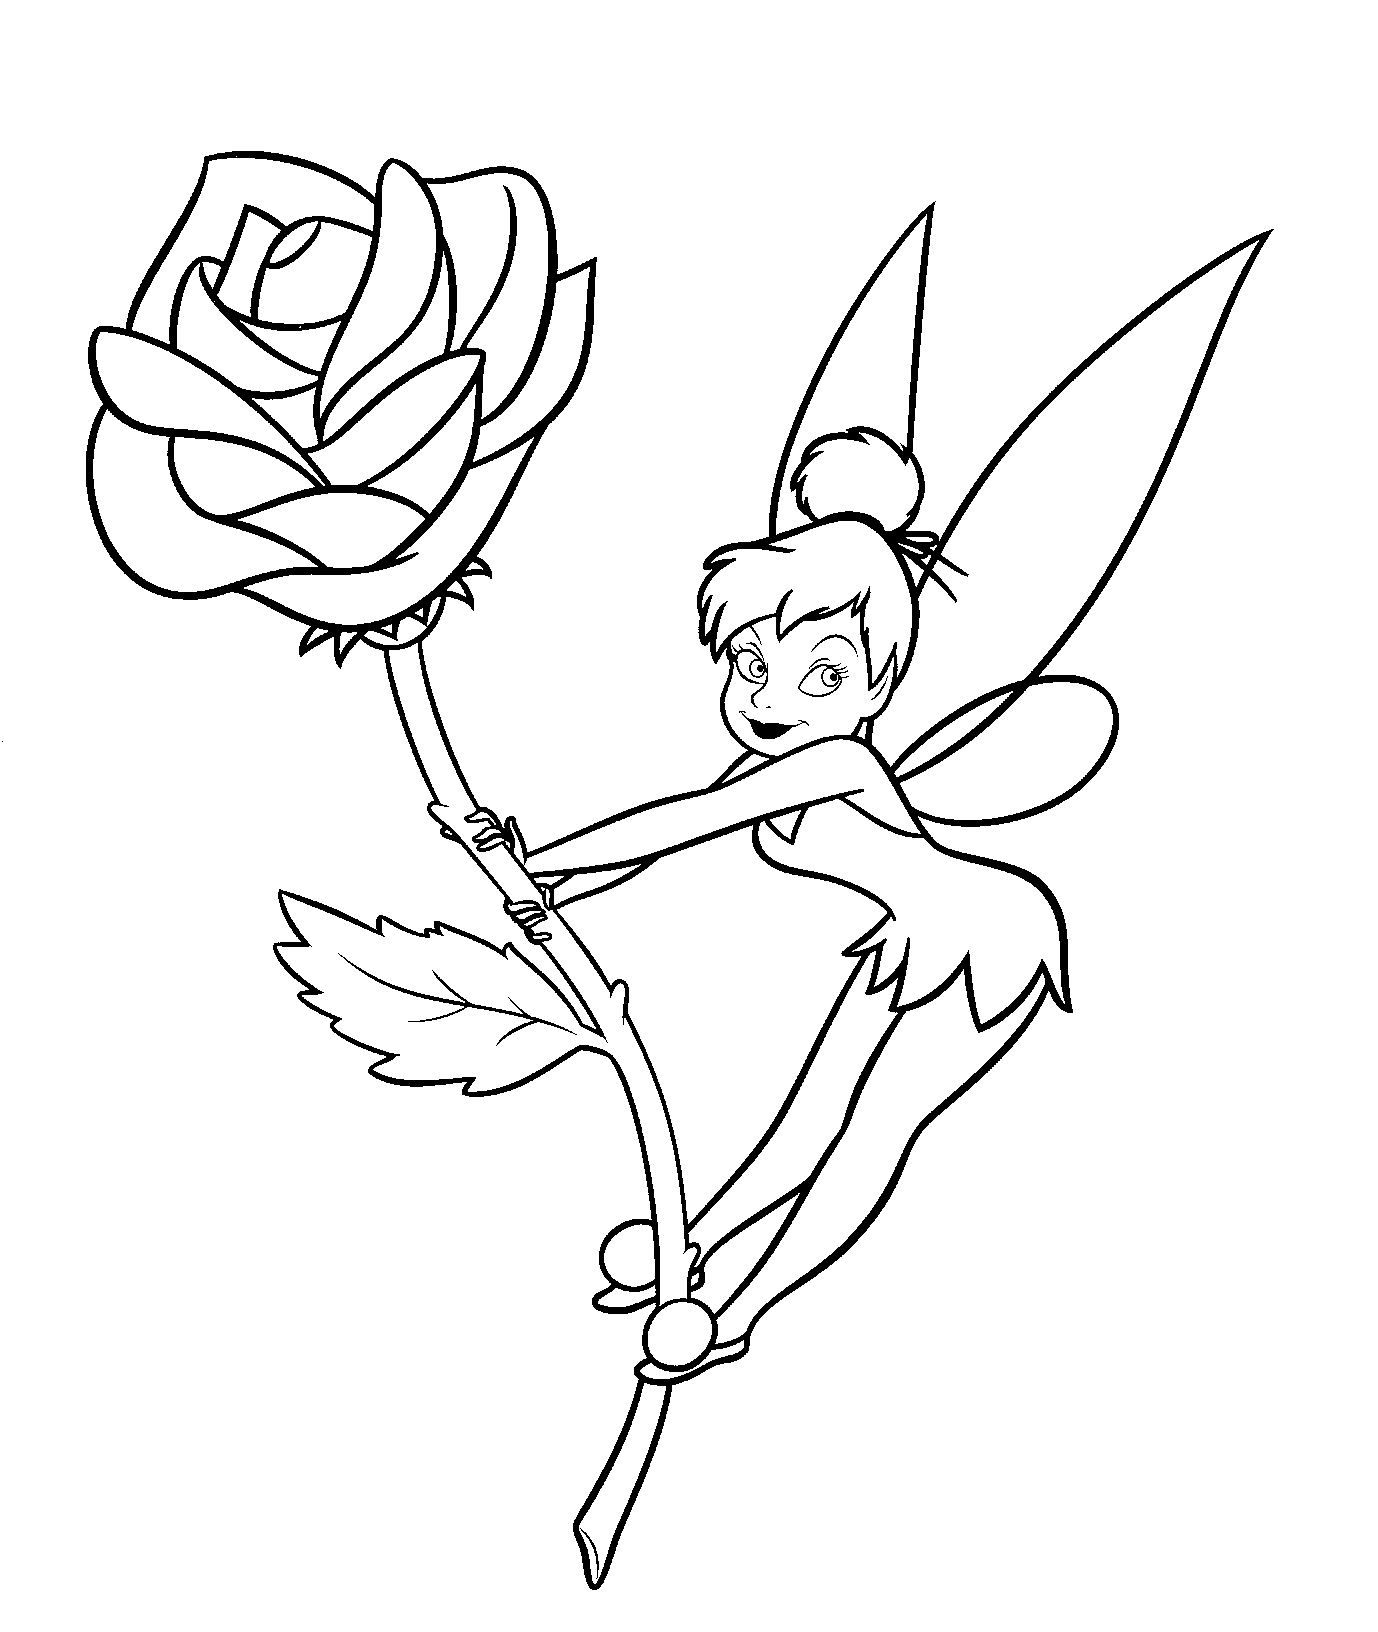 tinkerbell coloring pages tinkerbell coloring pages pinterest tinkerbell coloring books. Black Bedroom Furniture Sets. Home Design Ideas